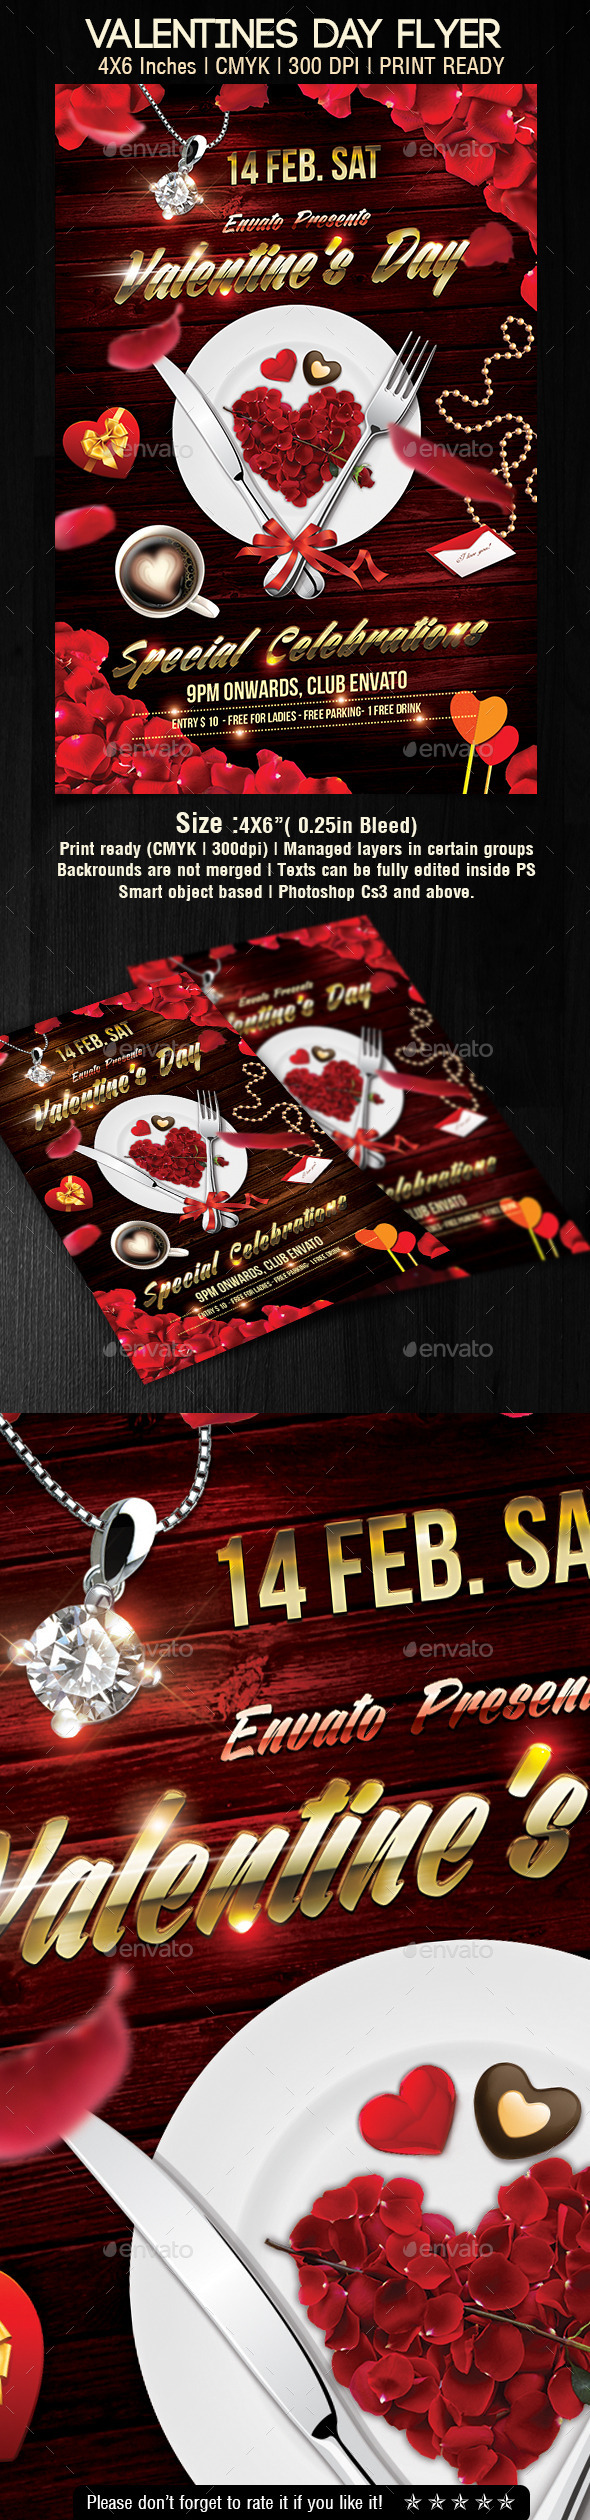 GraphicRiver Valentines Day Flyer 10206413